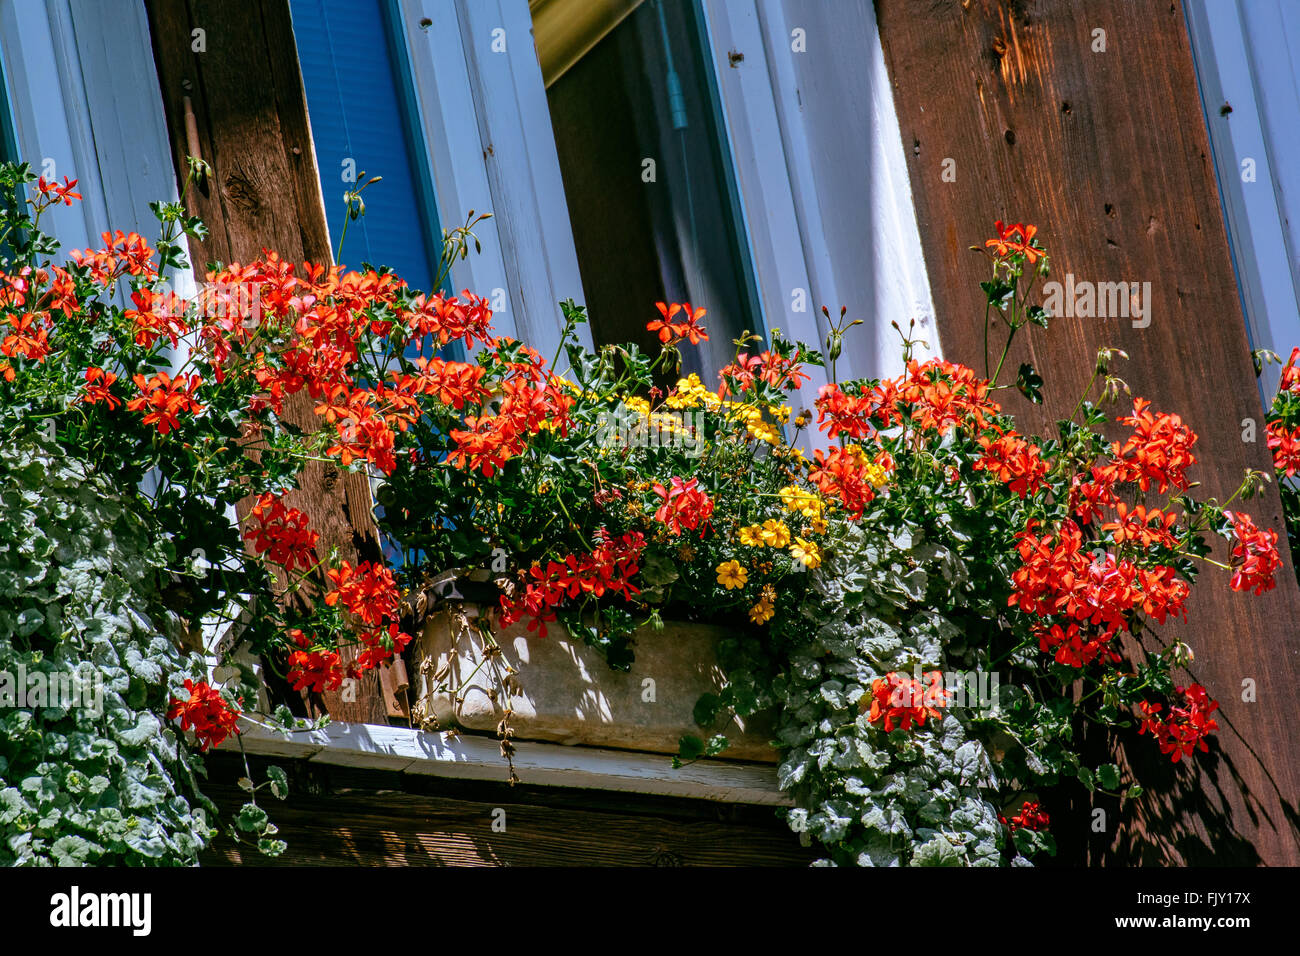 Low Angle View Of Flowers Growing On Window Box - Stock Image